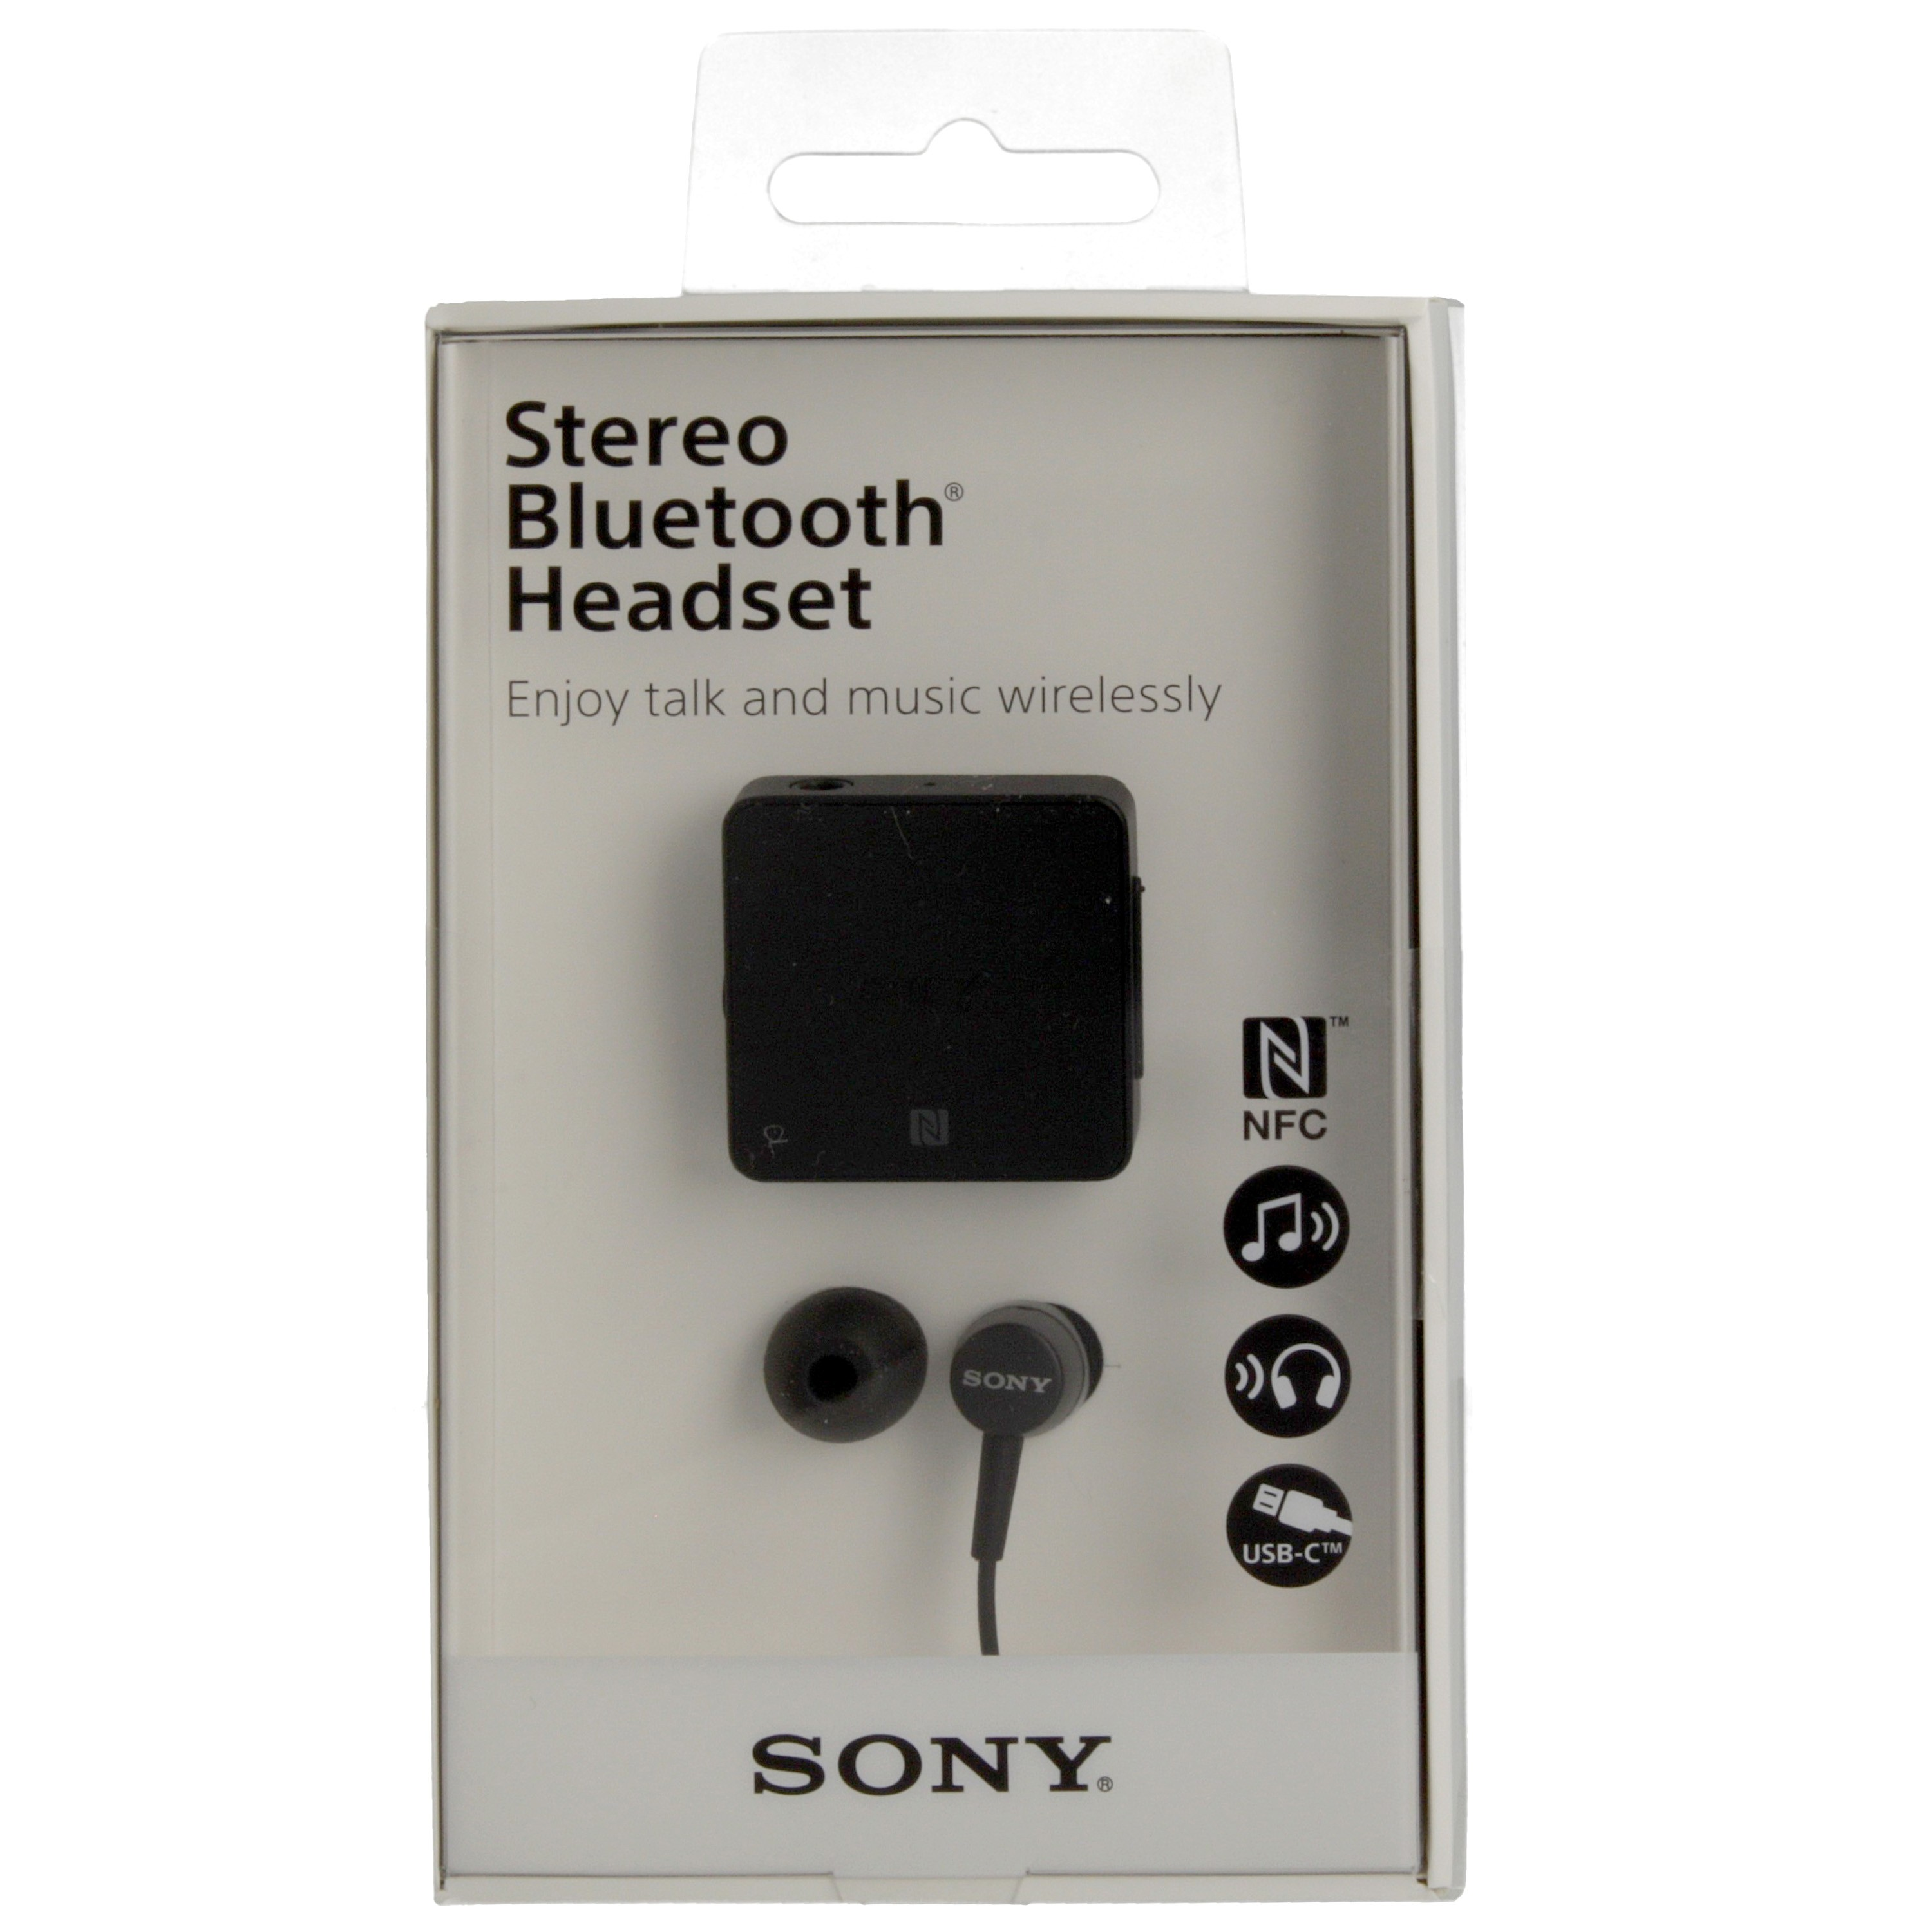 Sony Bluetooth Headset Stereo Sbh24 With Nfc Black Qmr Shop